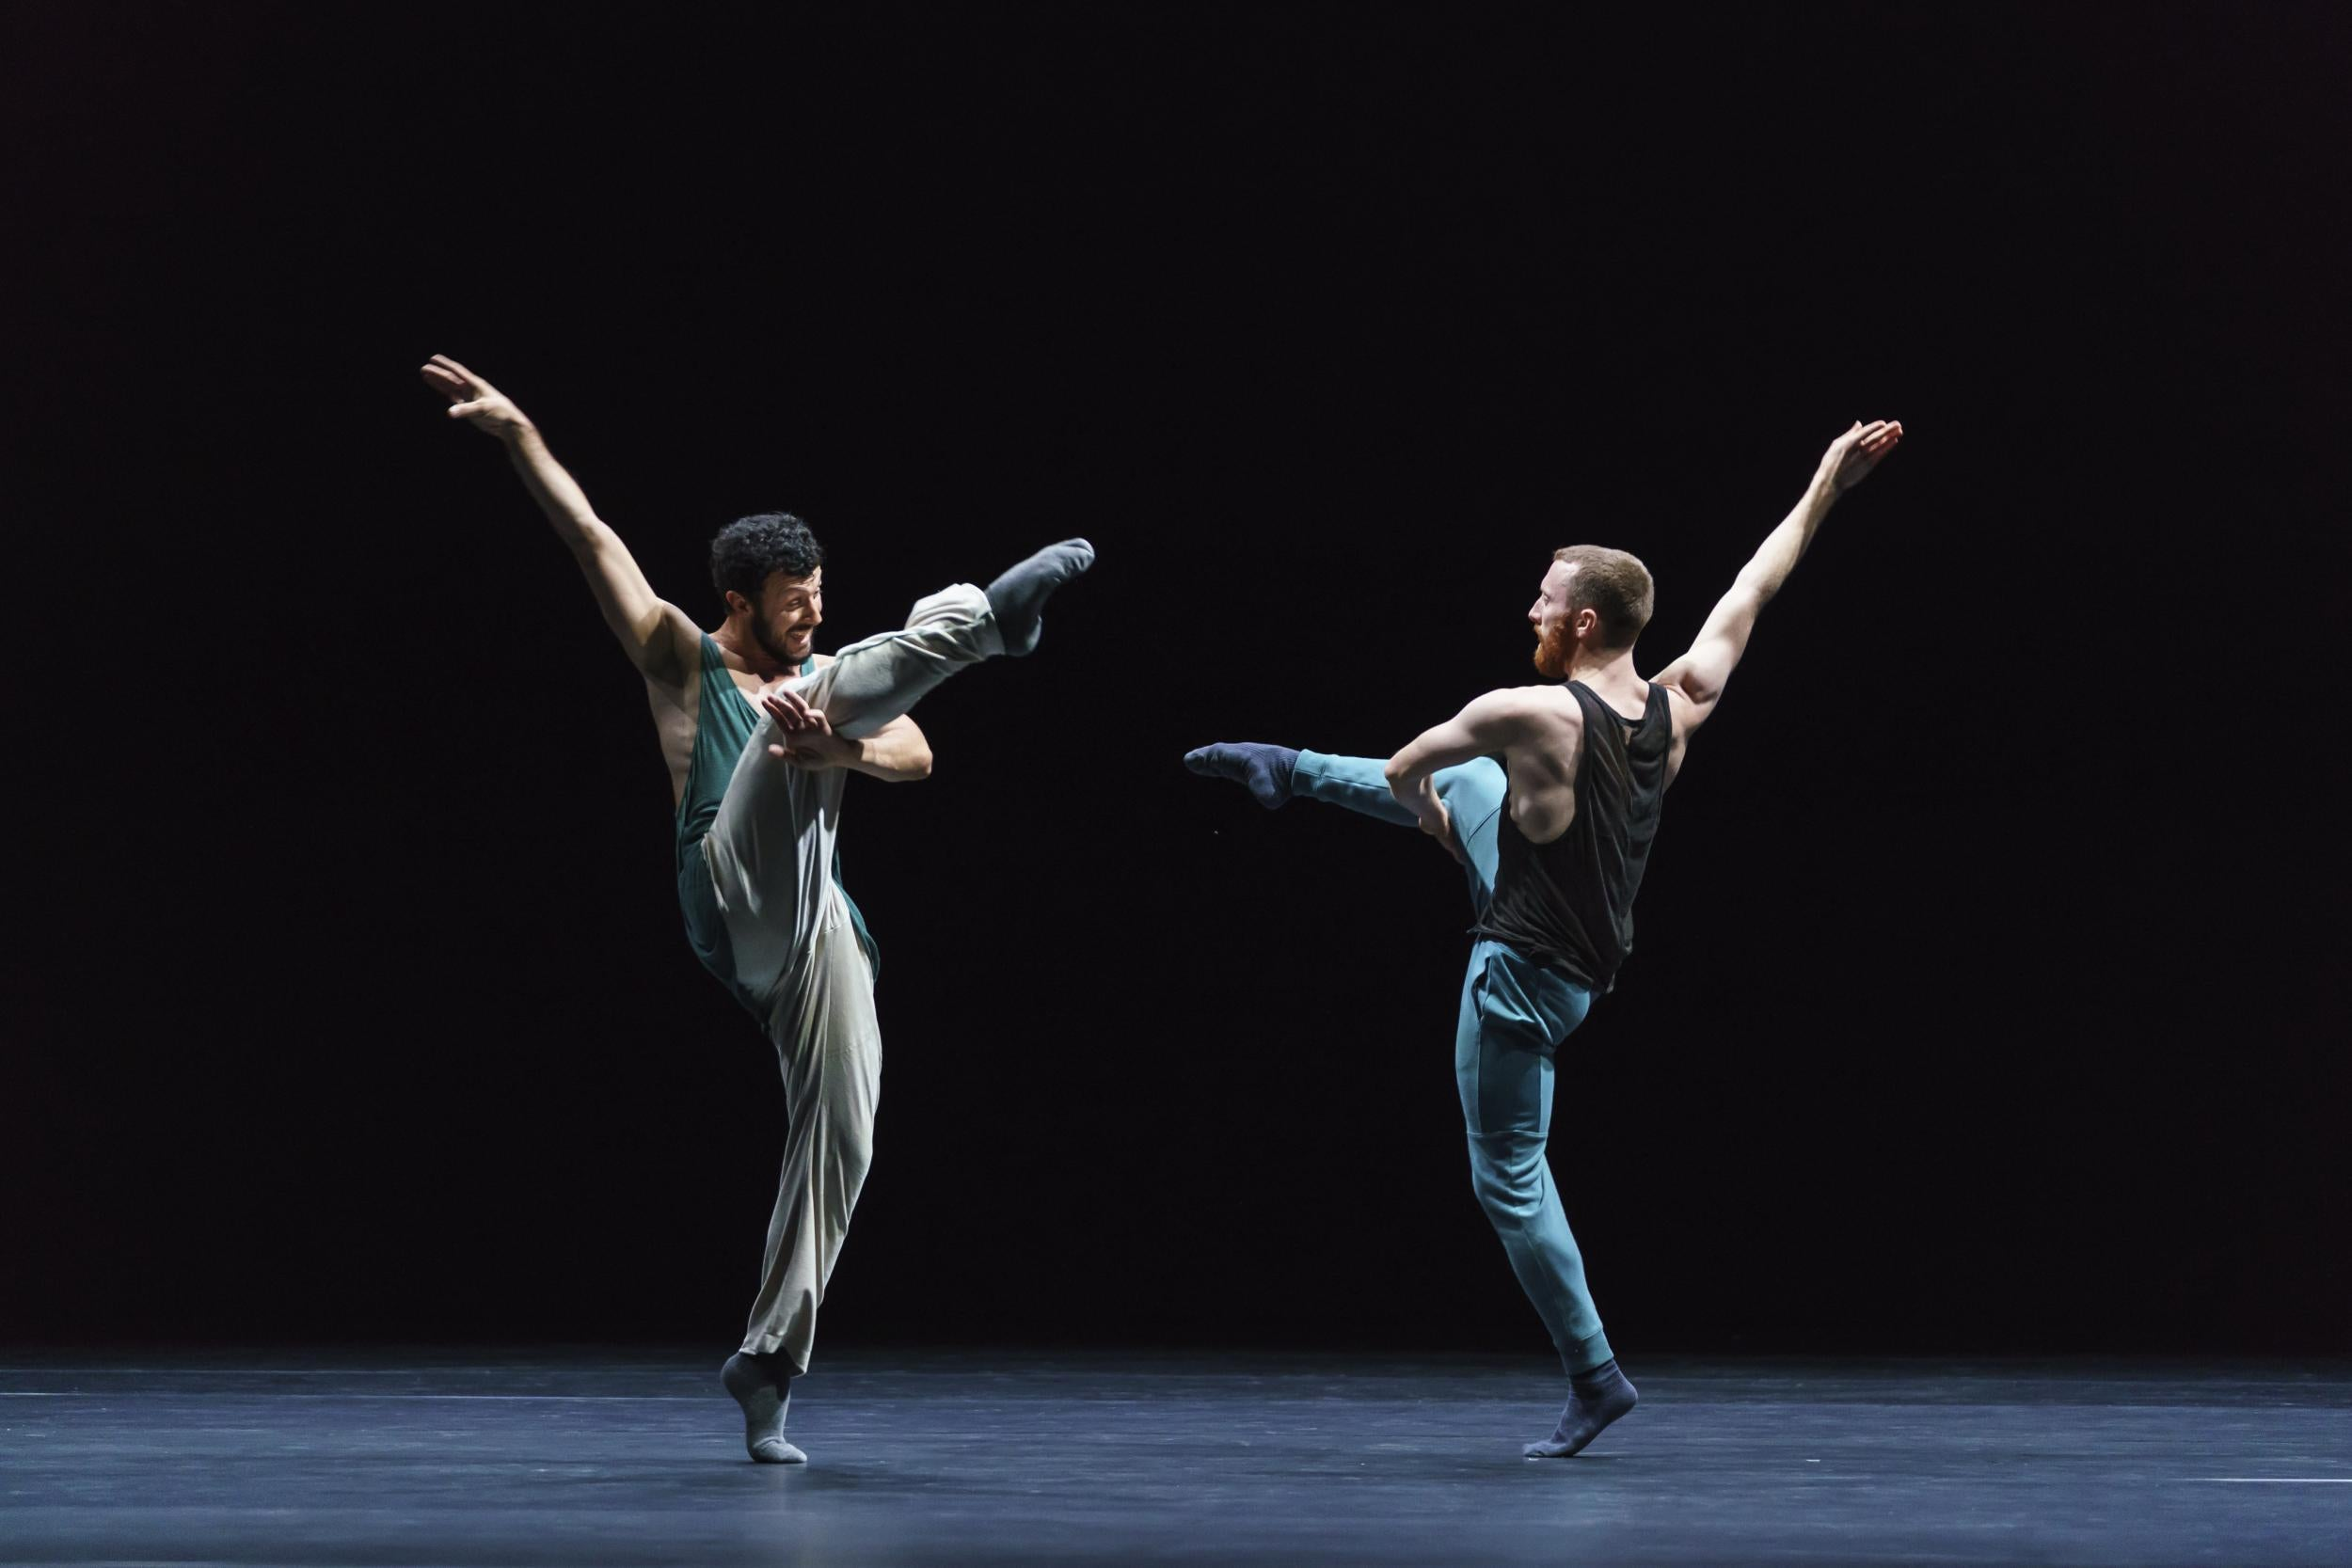 William Forsythe interview: 'I like being part of the big ballet conversation'